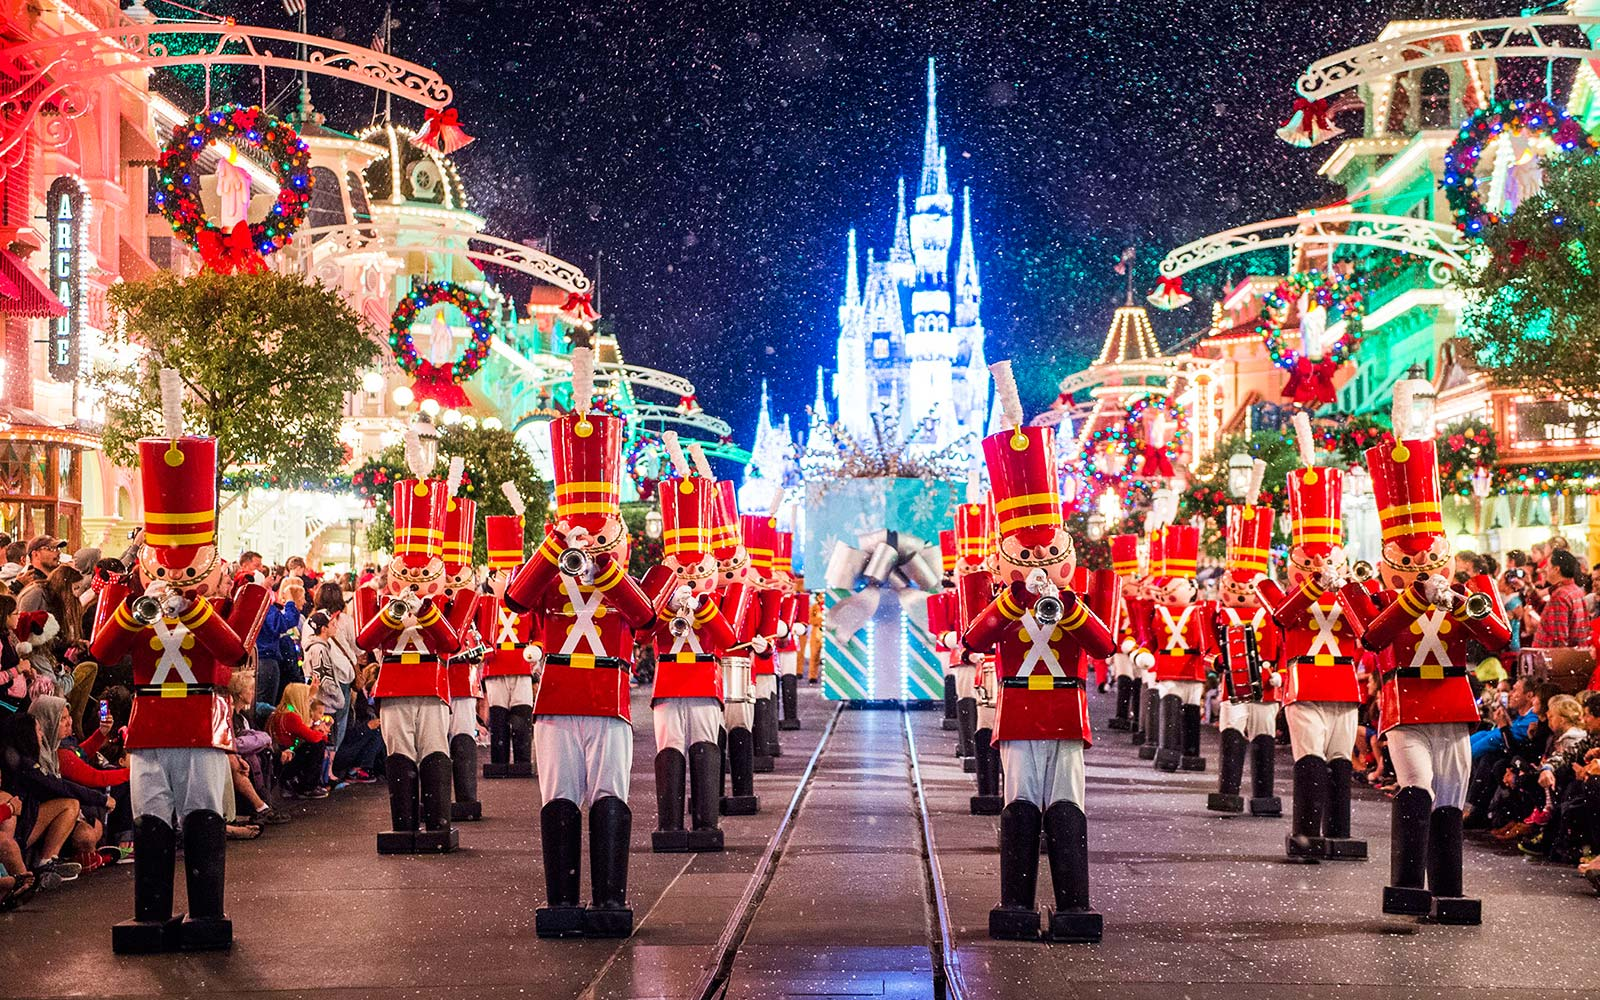 Disney World Just Announced an Ultimate Christmas Package Full of Exclusive Experiences